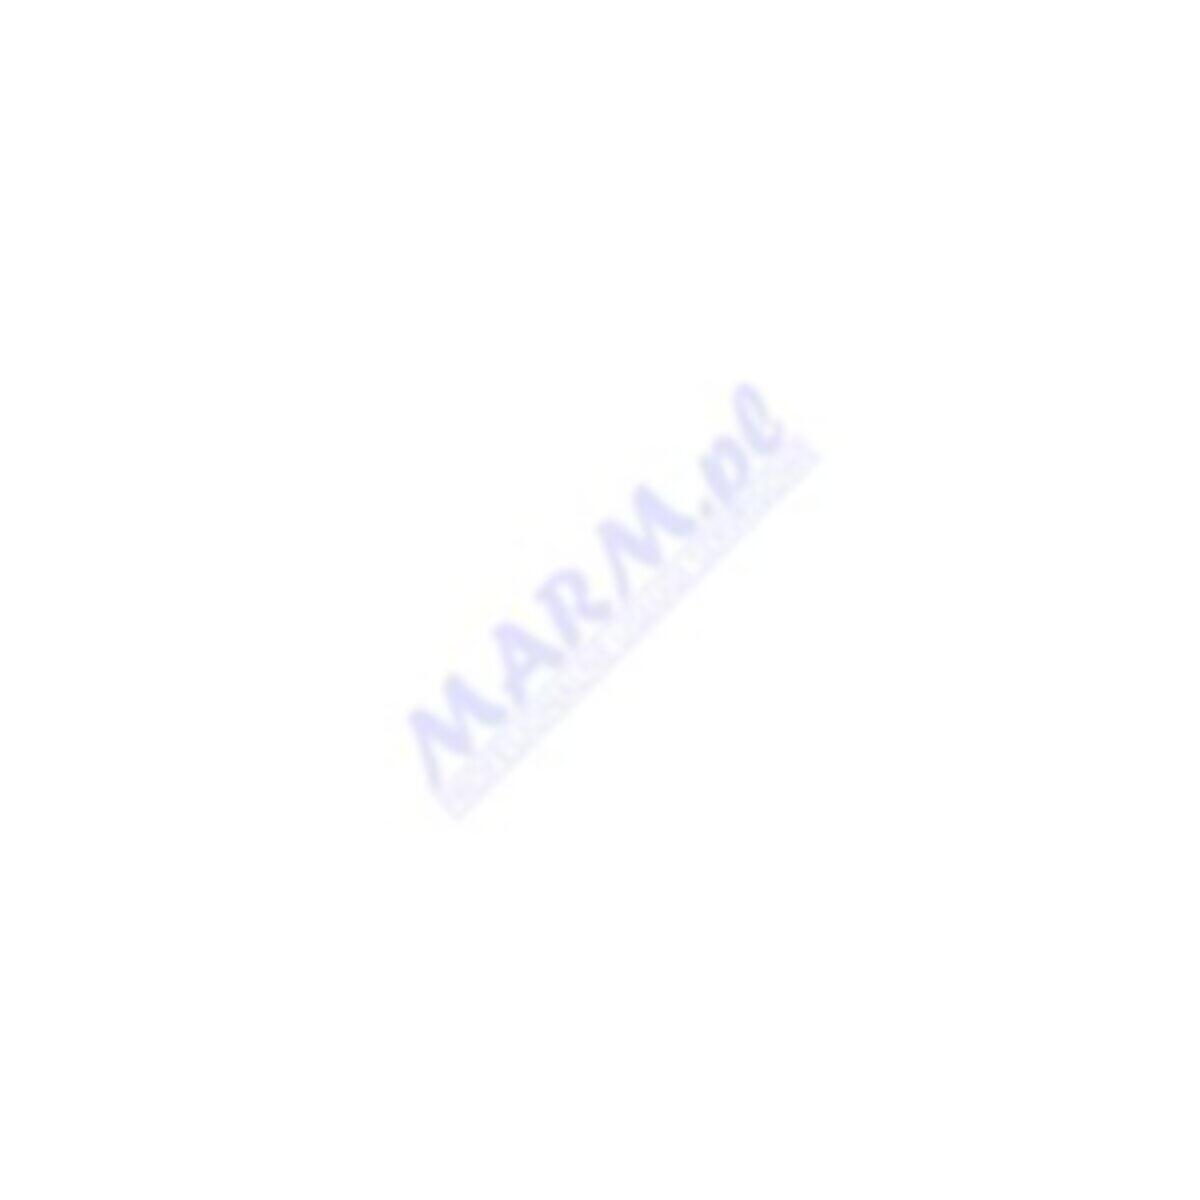 THERMISTOR AF2060 MIDDLE AW100131 RICOH